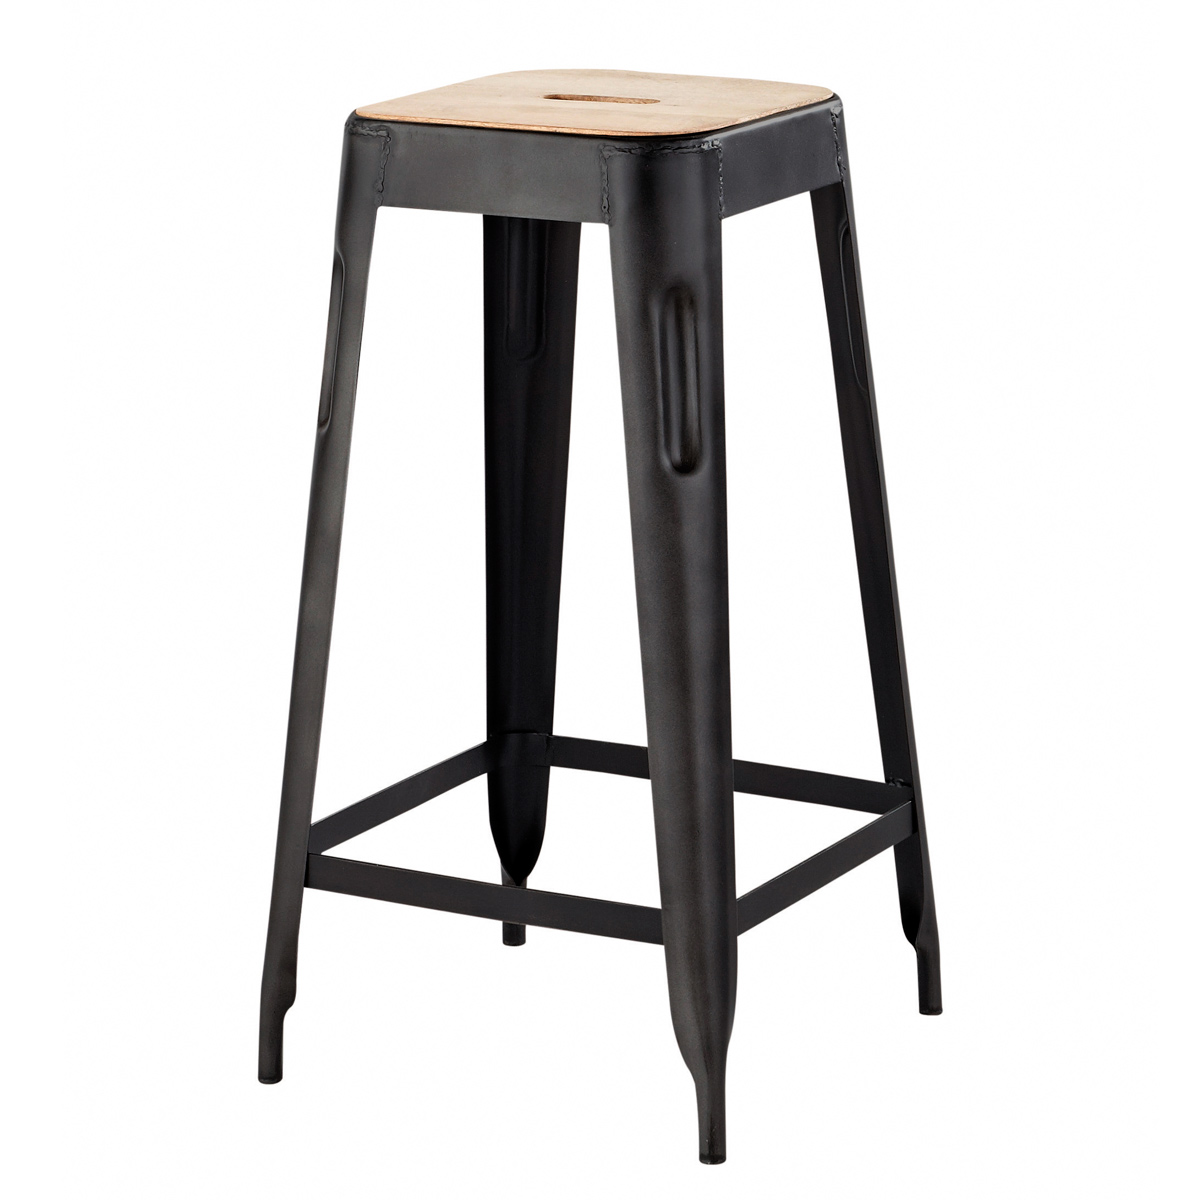 Tabouret Bar En Bois Tabouret De Bar Archives Homelisty